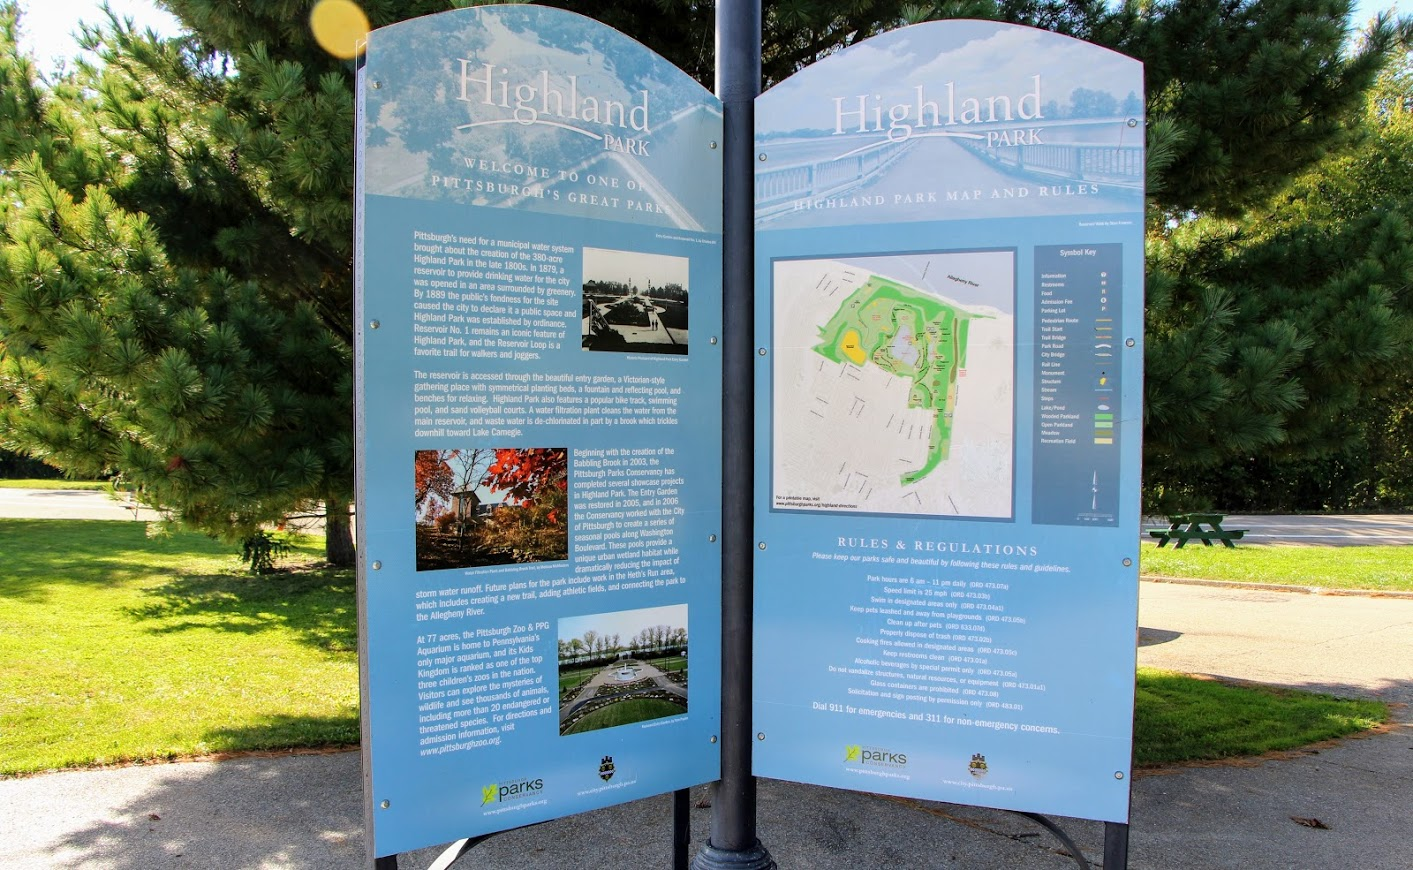 Highland Park Map, Highland Park Welcome Sign